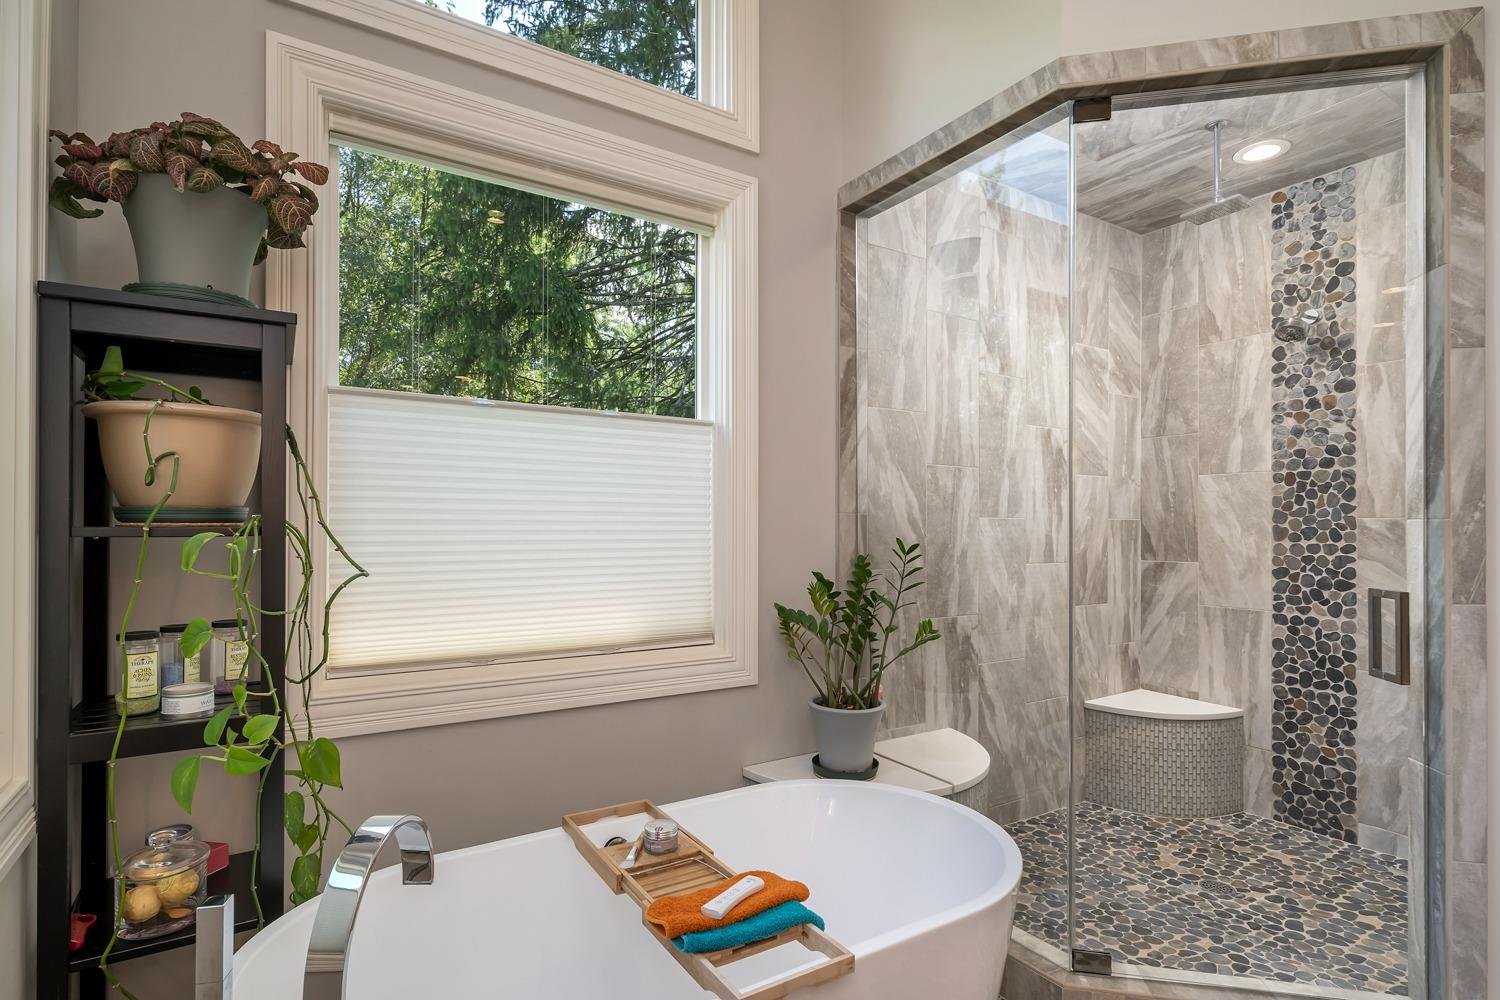 Master bathroom also features a steam shower with 2 shower heads (One is rain shower type) and a soaking tub with air massage.